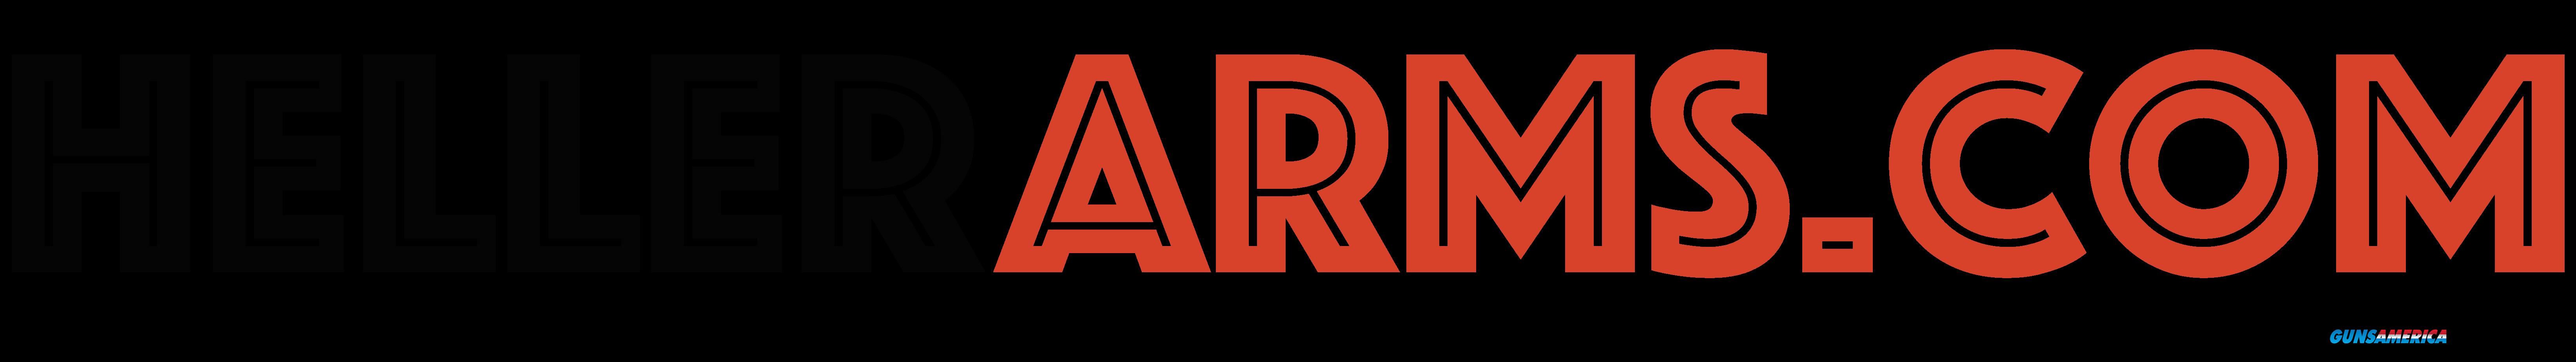 Mark V Weathermark MWMM270WR6O  Guns > Rifles > Weatherby Rifles > Sporting